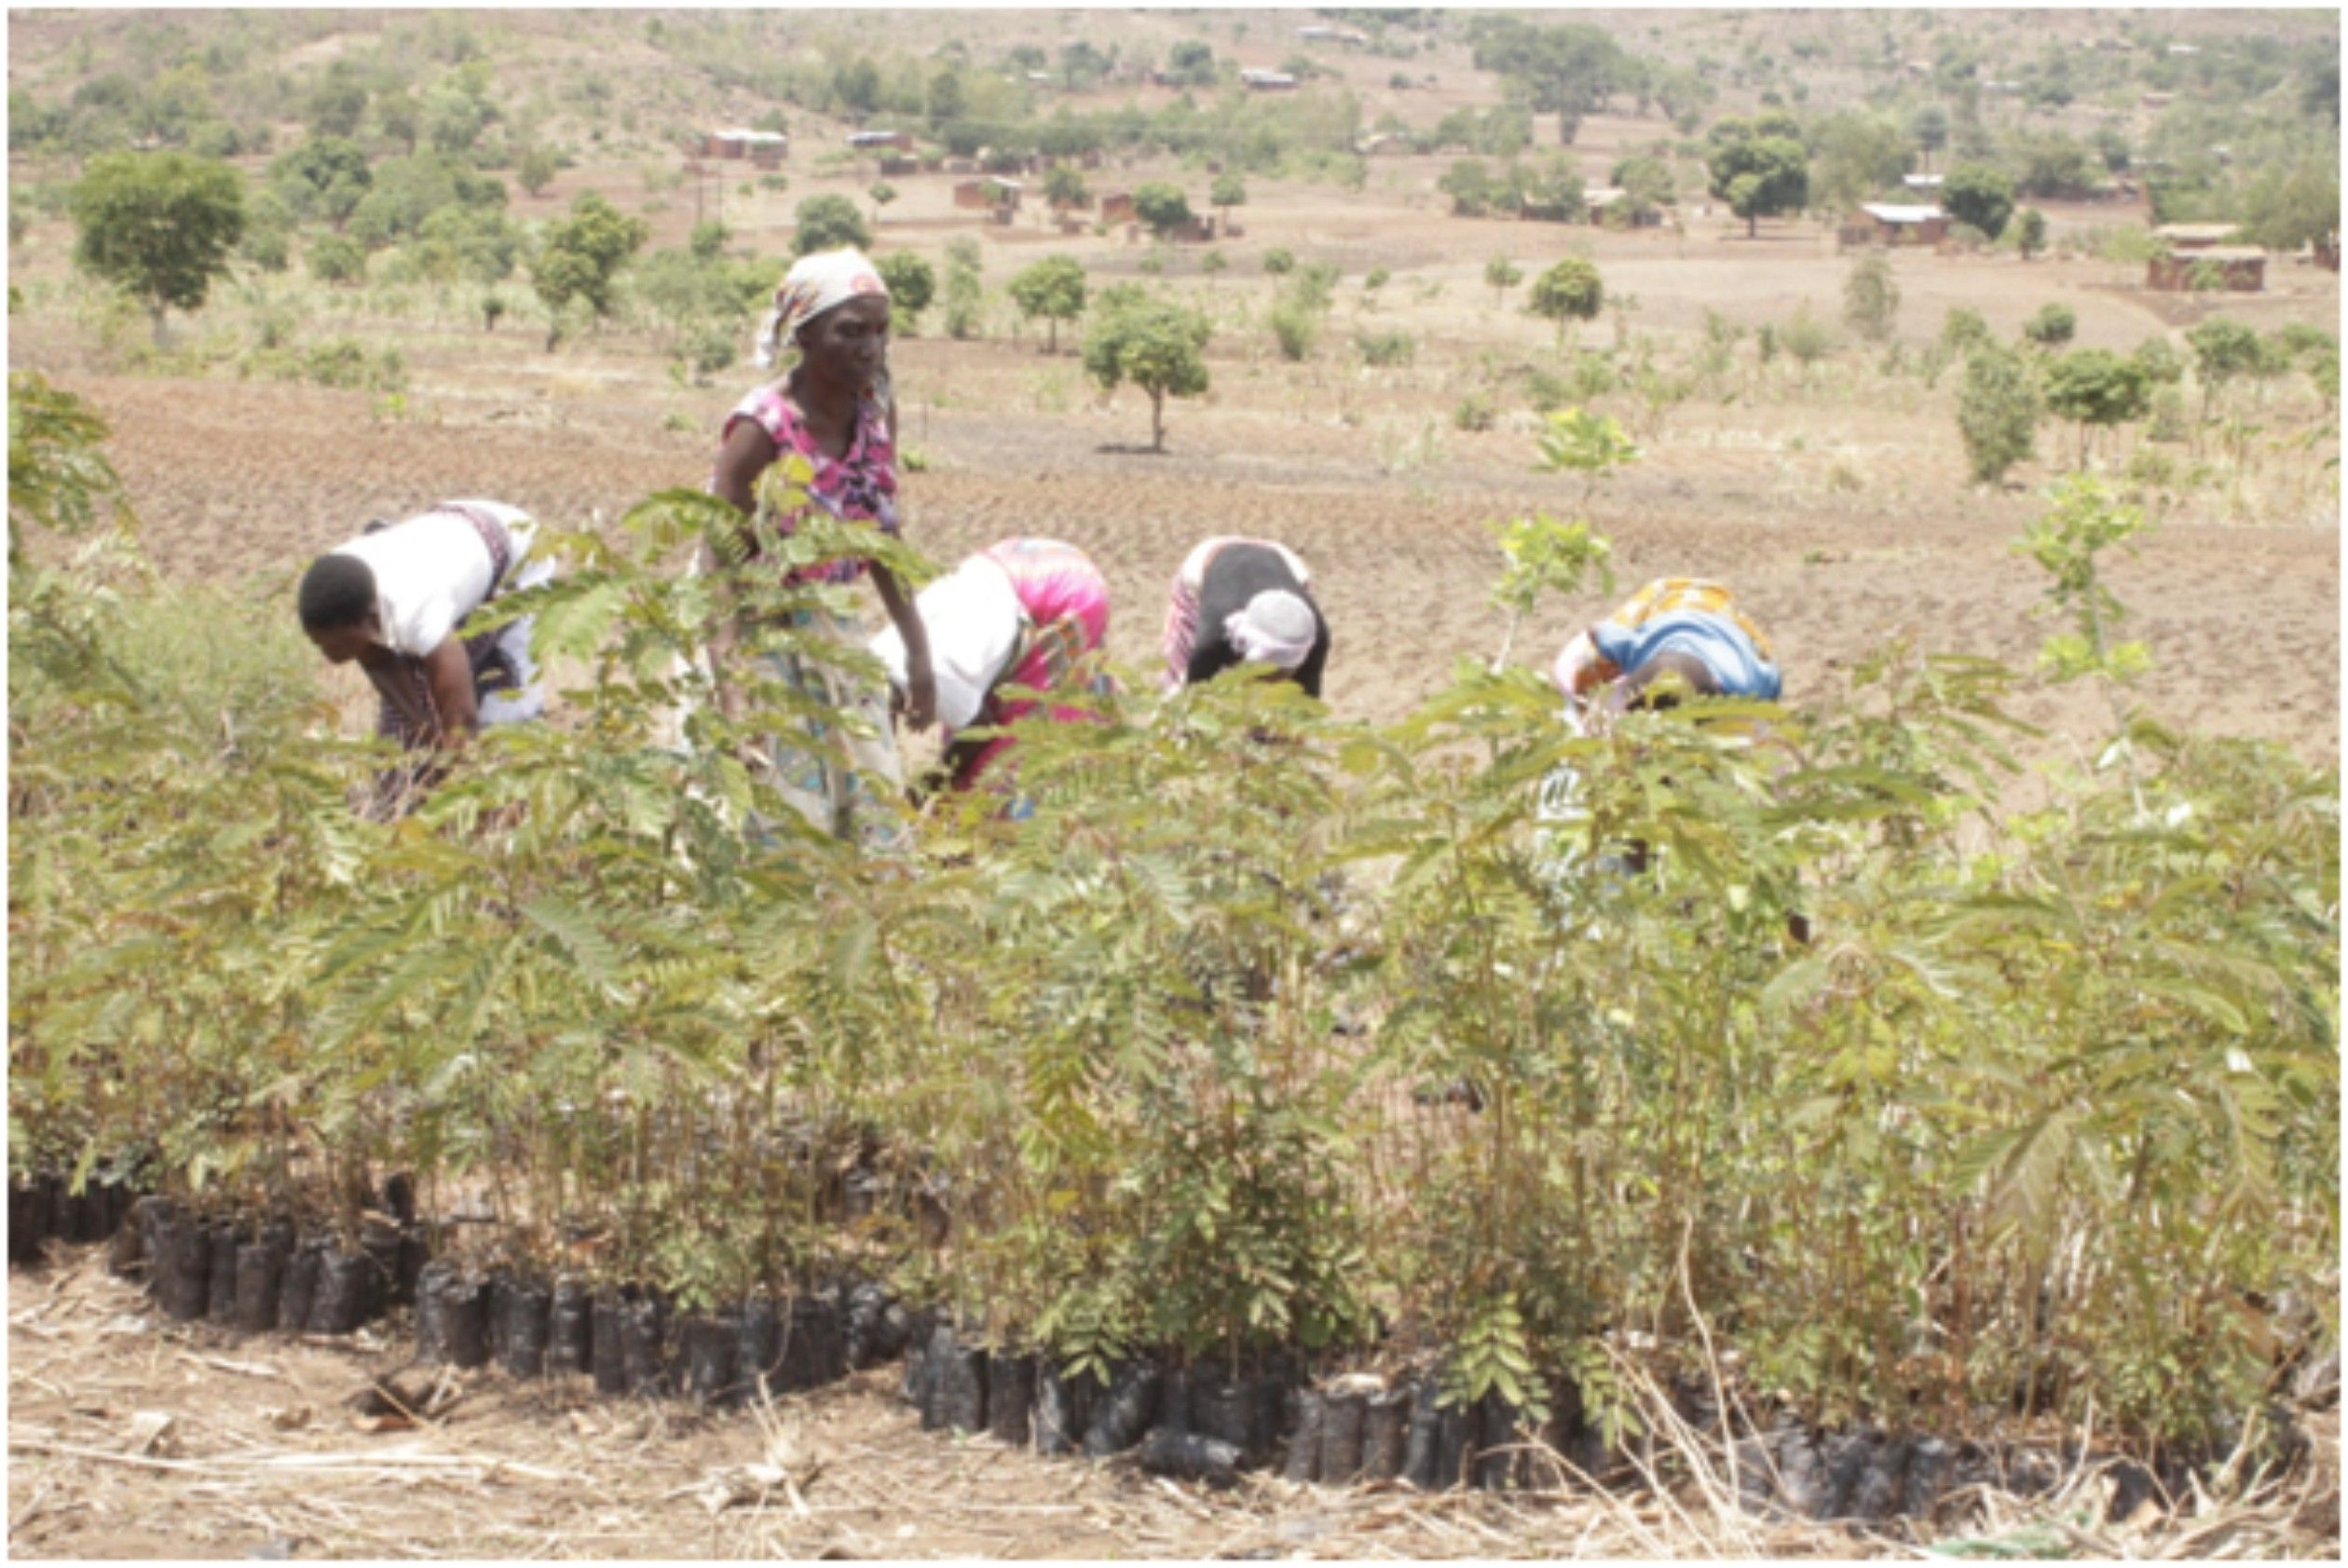 wfp-dapp-malawi-mitigating-the-impact-of-climate-change